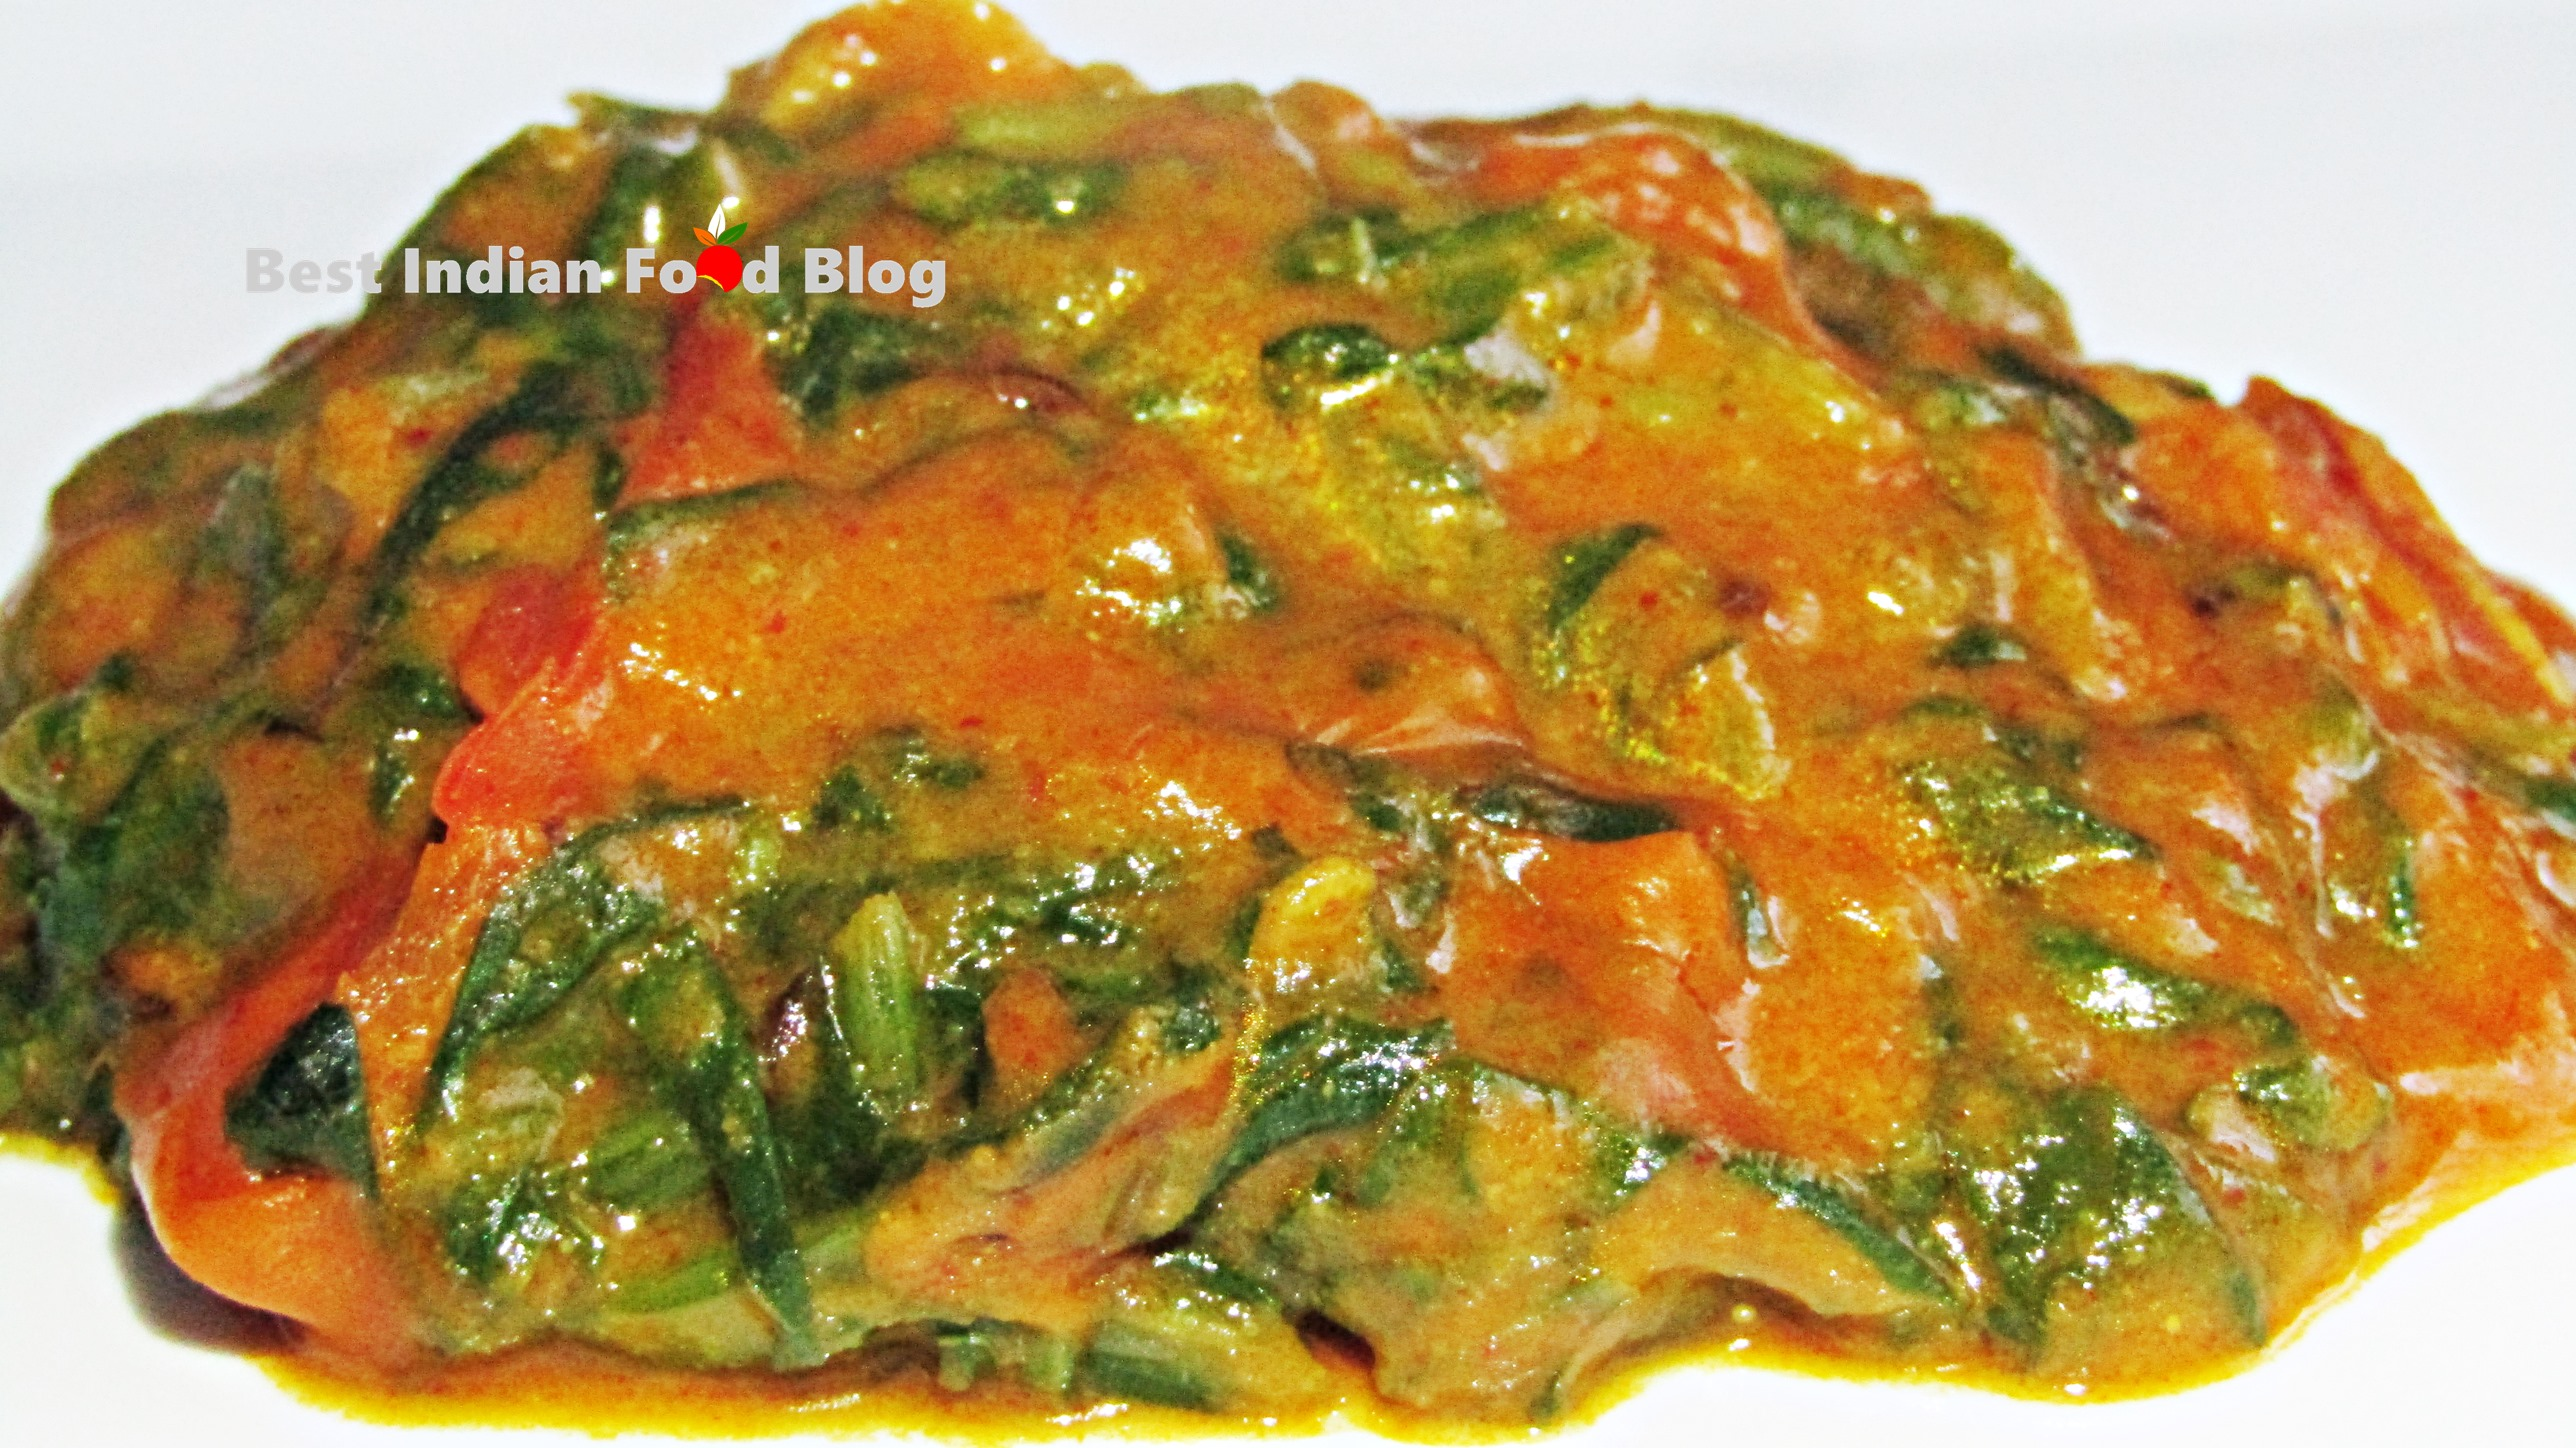 Palak nu Shaak from Gujarat, India   Best Indian Food Blog   Spinach recipe